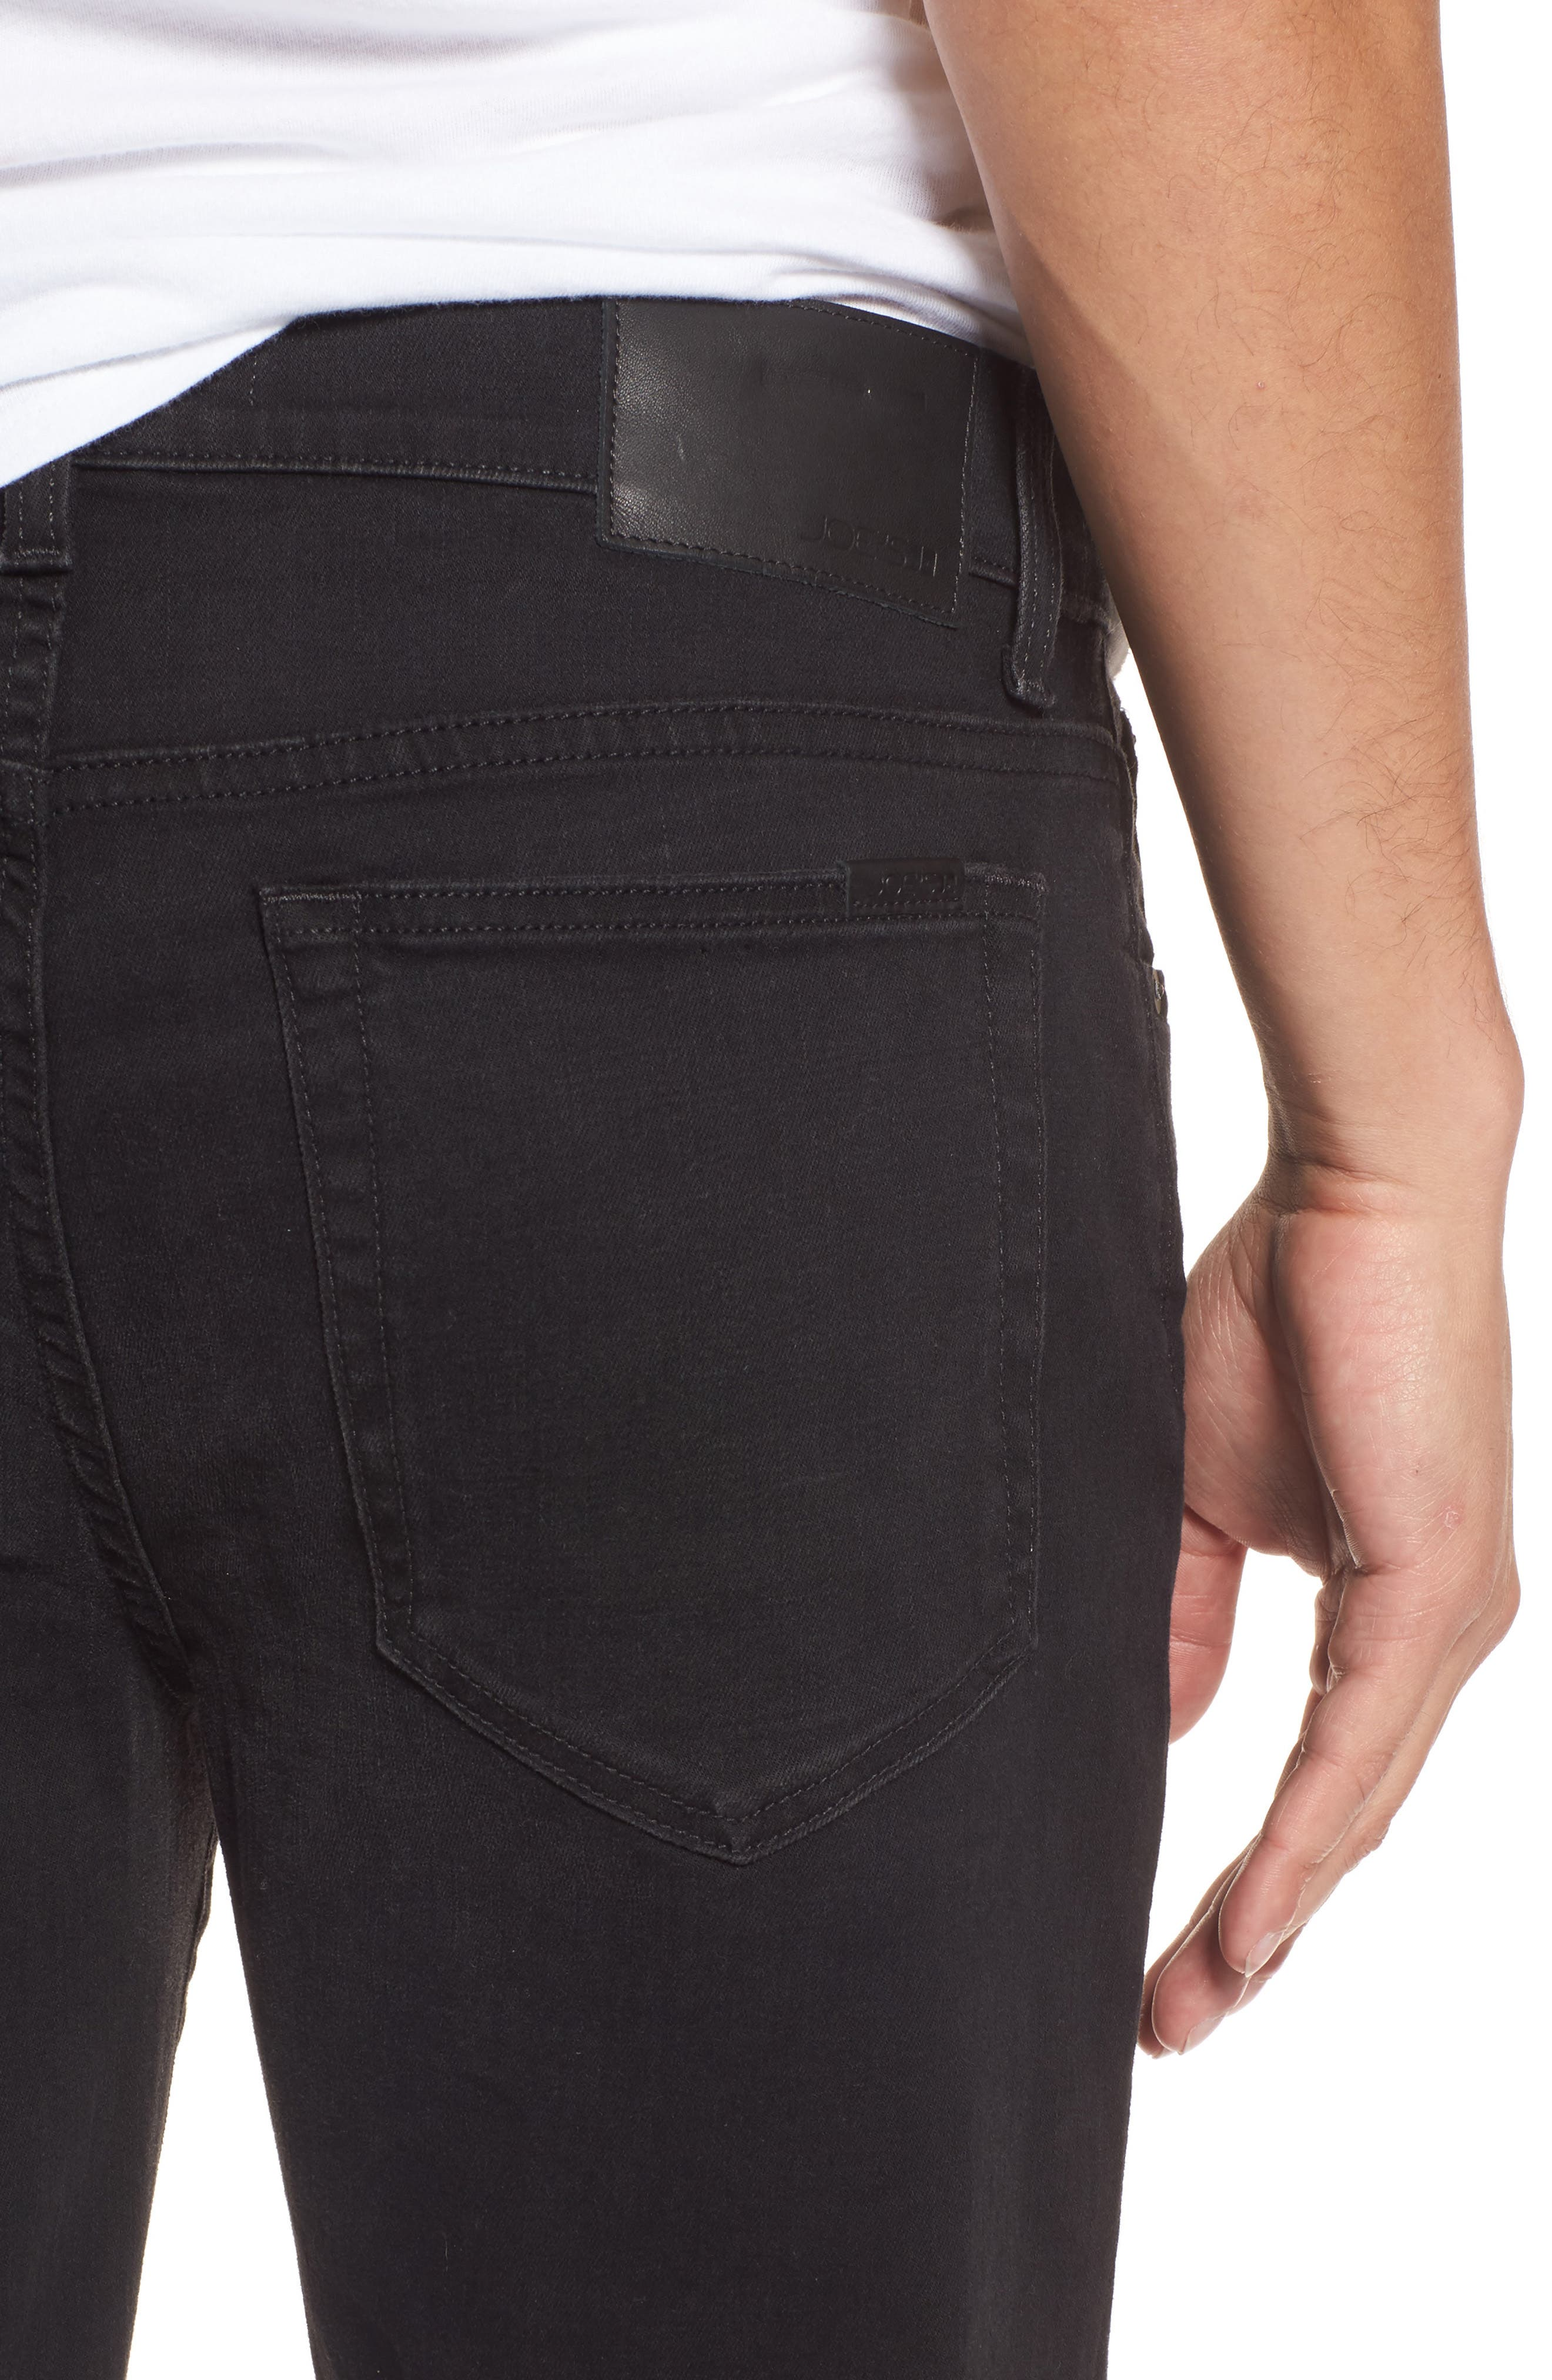 Soder Slouchy Skinny Jeans,                             Alternate thumbnail 4, color,                             Diggie